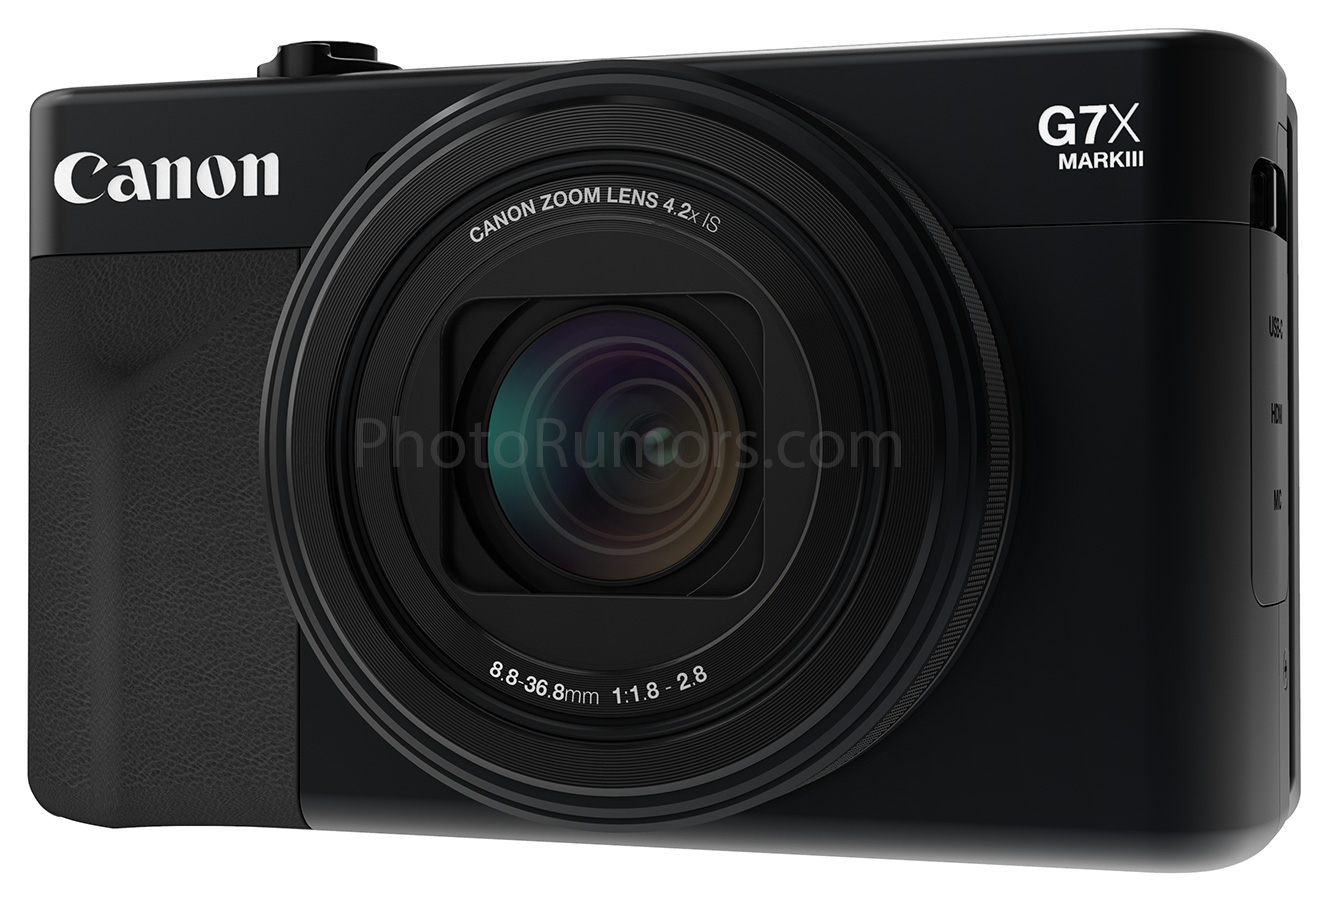 leaked canon powershot g7 x mark iii images and specs. Black Bedroom Furniture Sets. Home Design Ideas